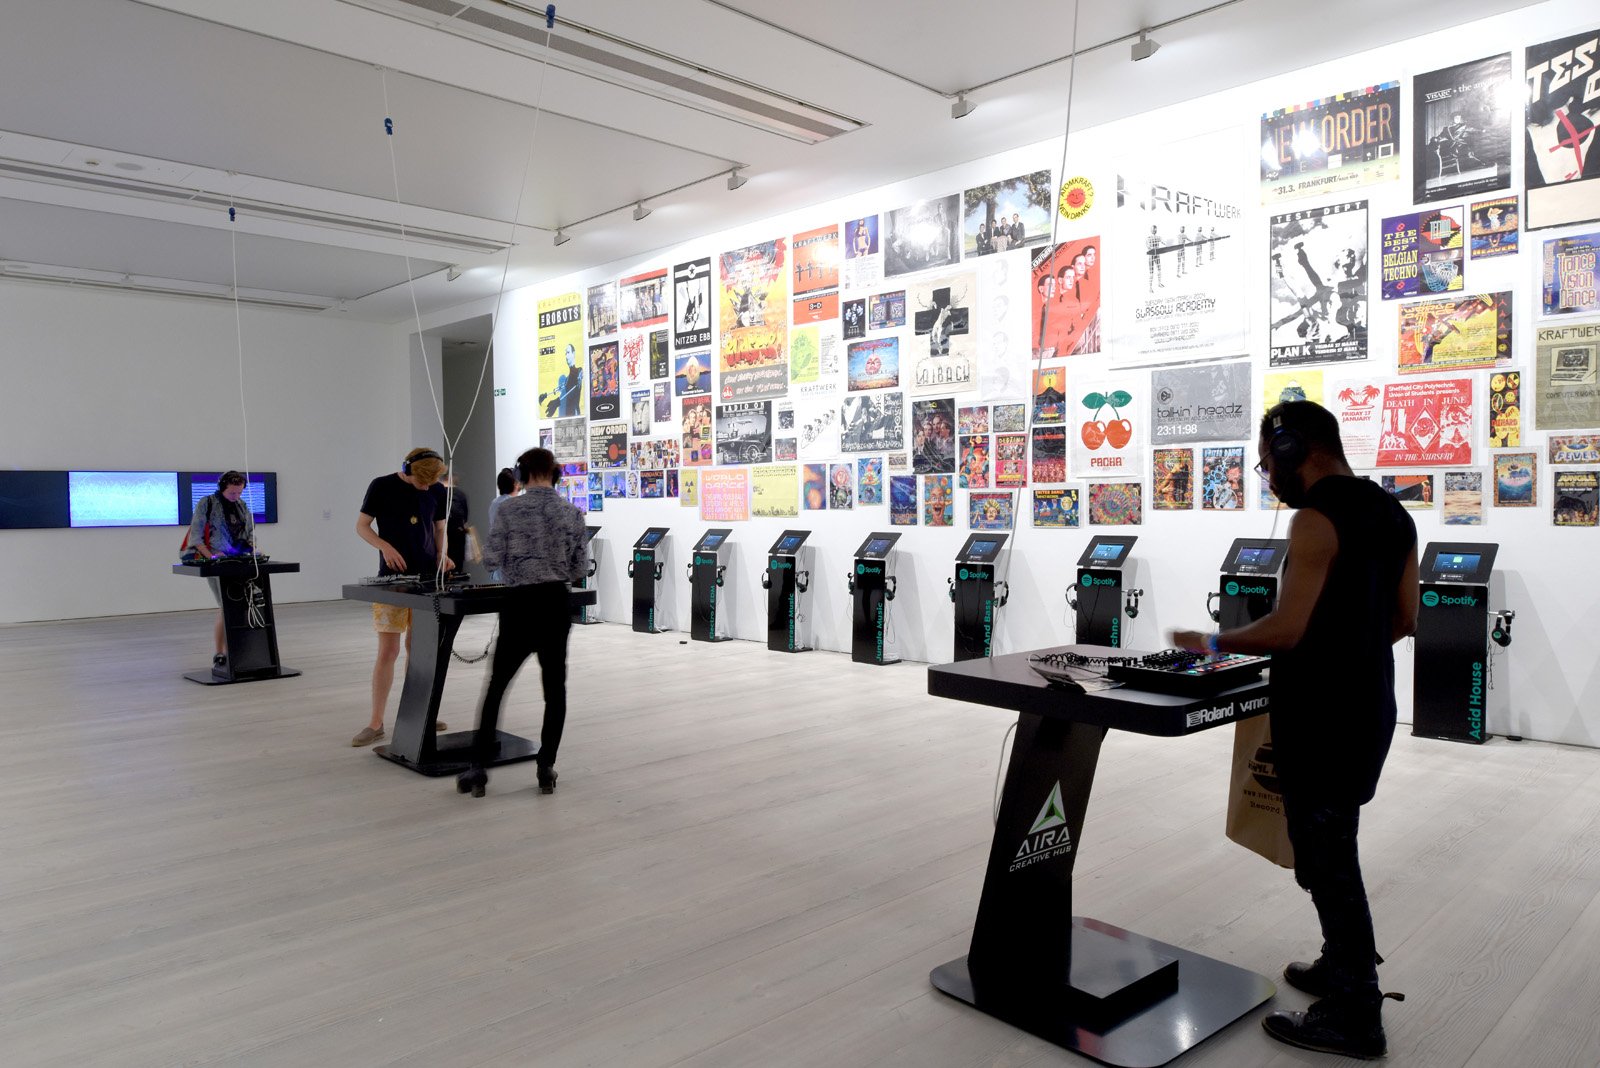 Installation view courtesy of the gallery.